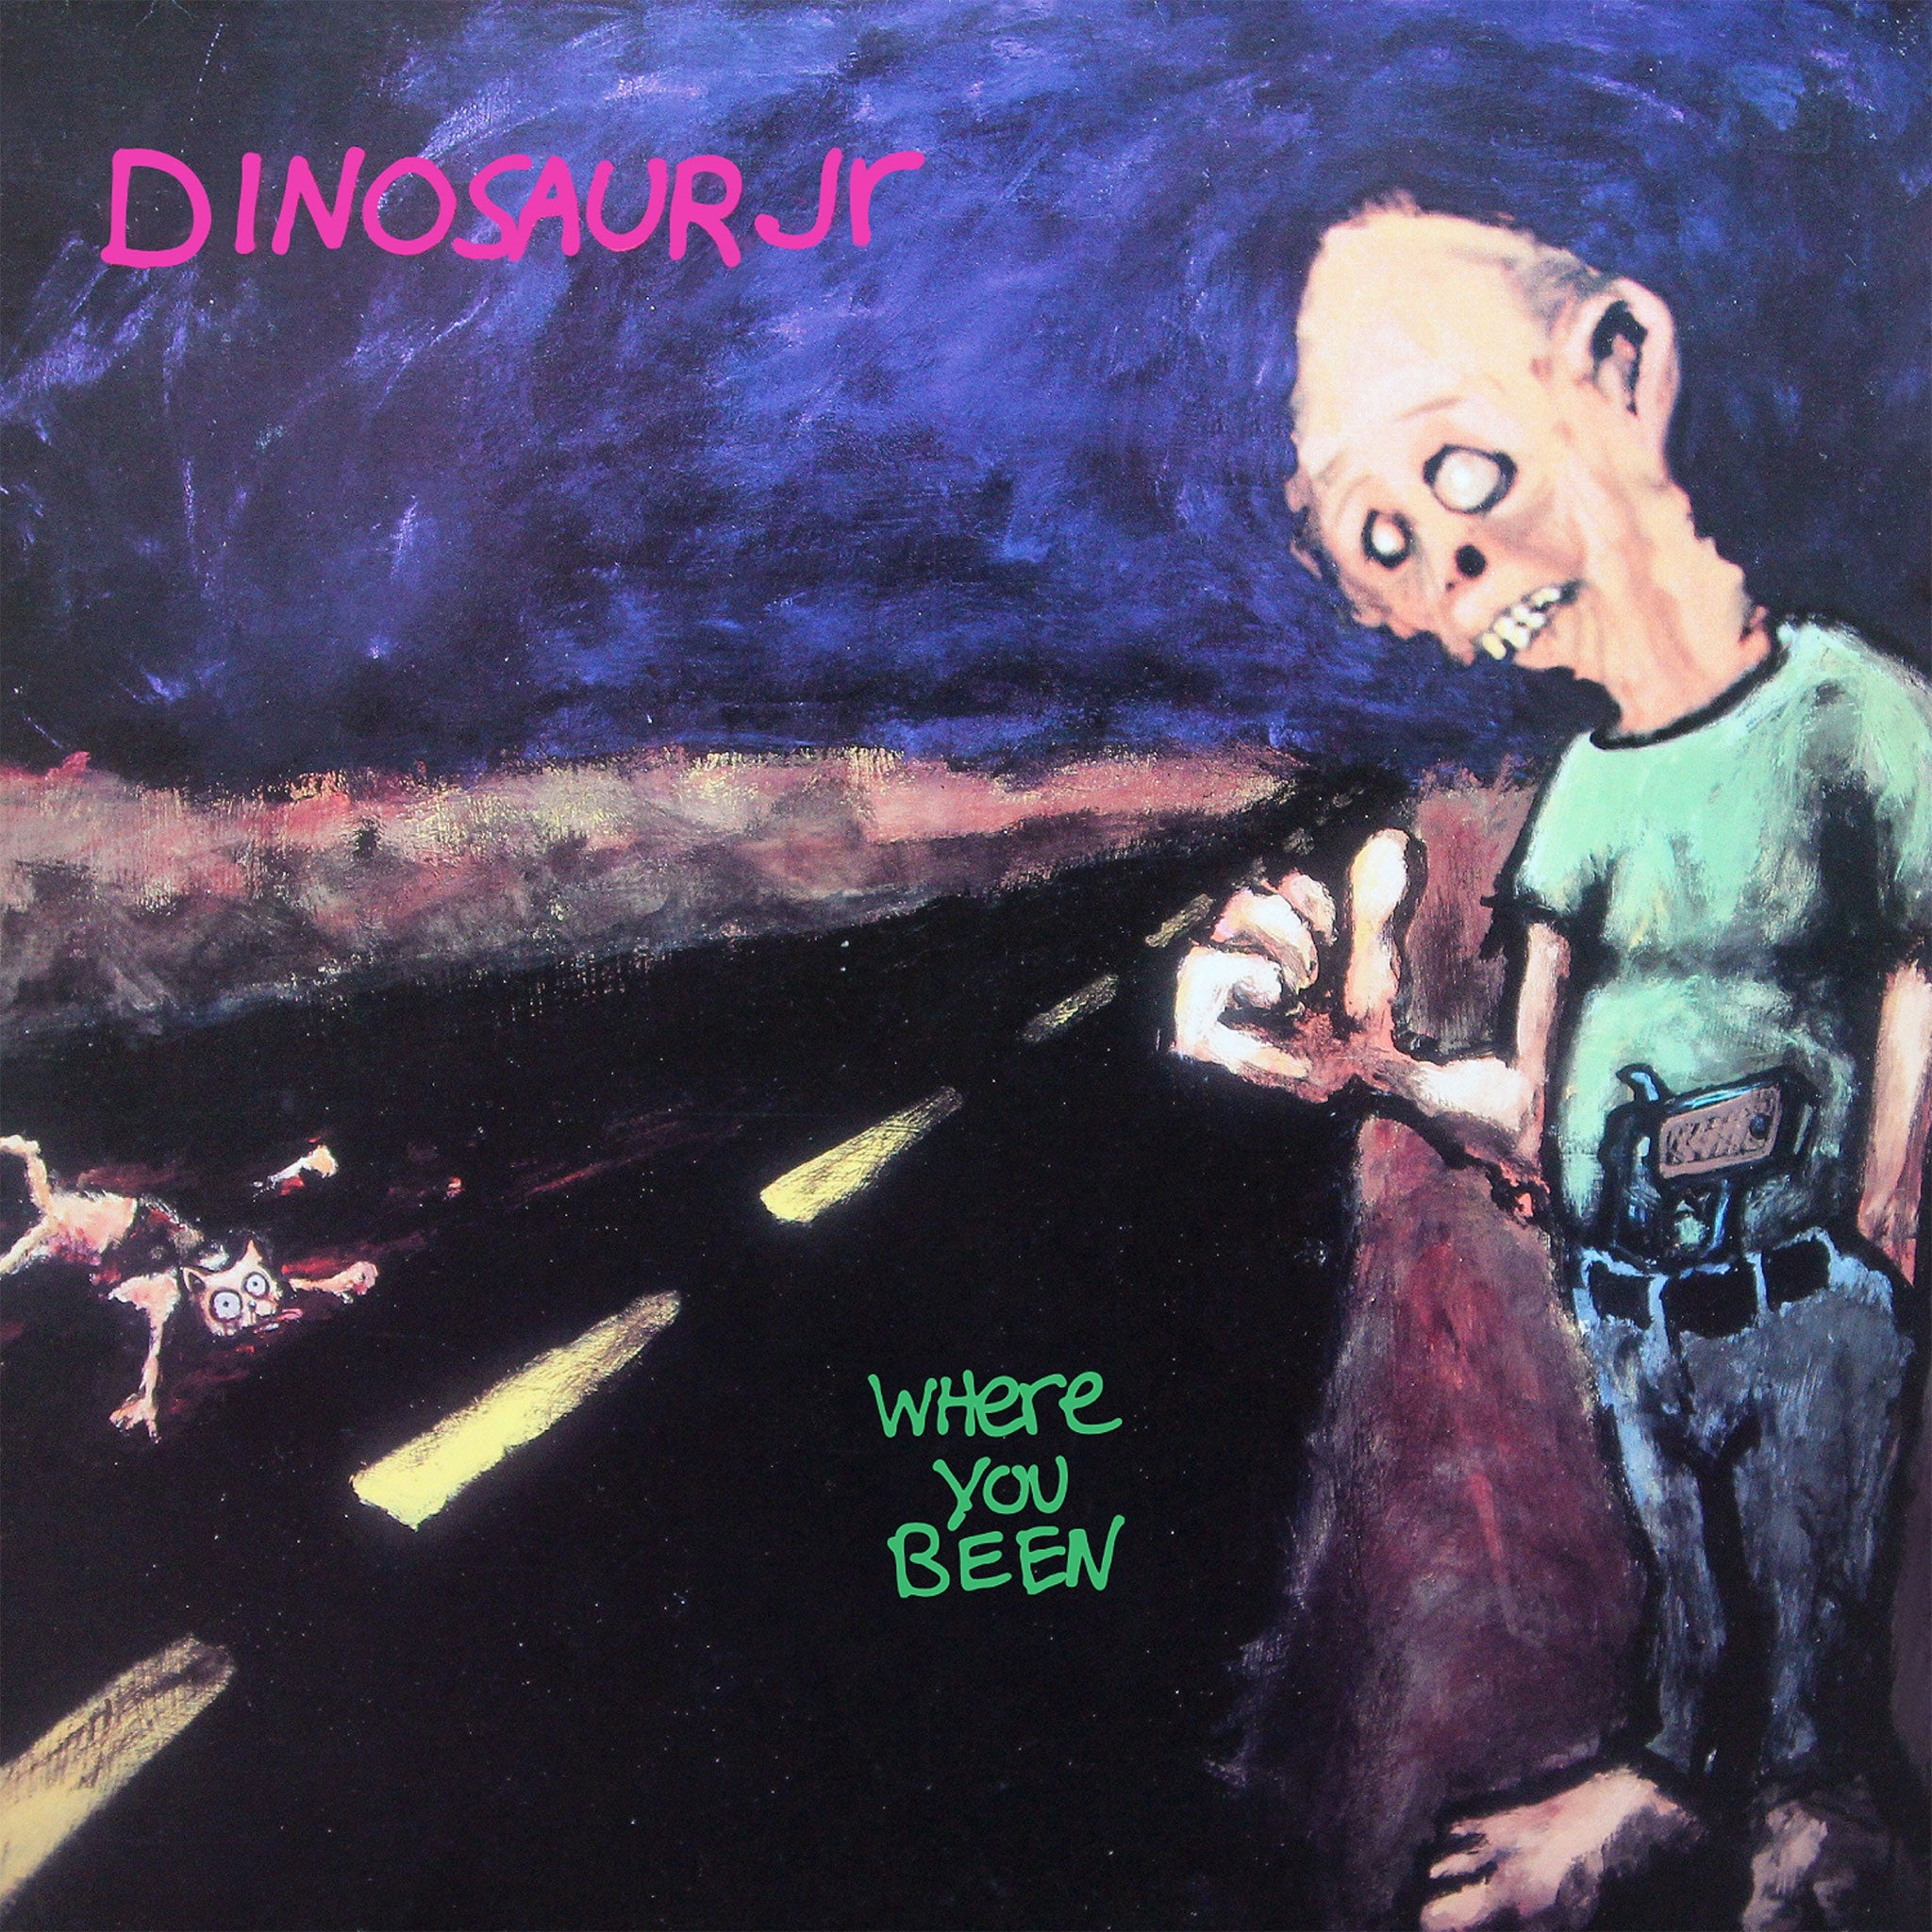 Dinosaur Jr - Where You Been (2019 Reissue) (Deluxe Expanded Edition) (Digipak 2CD)